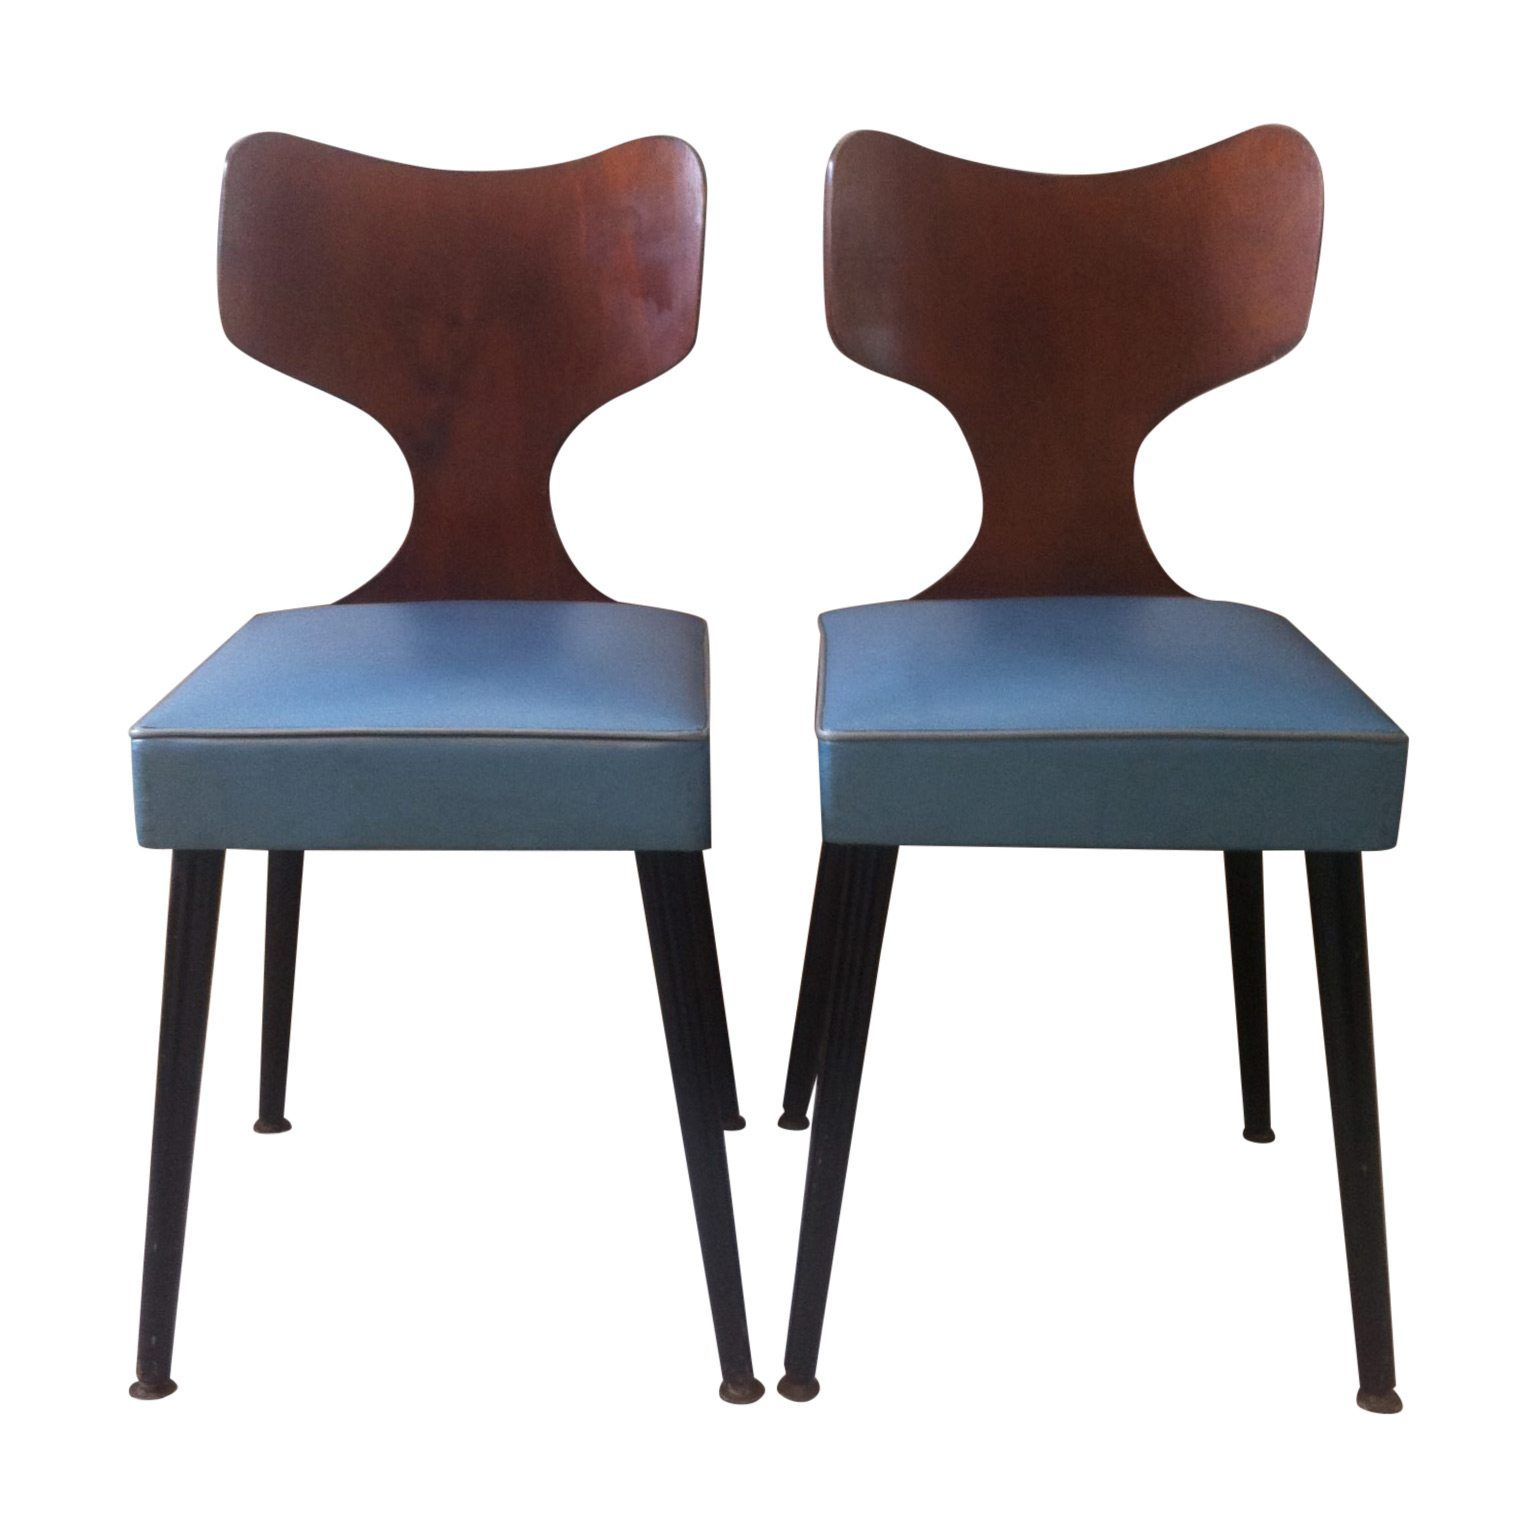 Pair Of Original Retro Vinyl Chairs